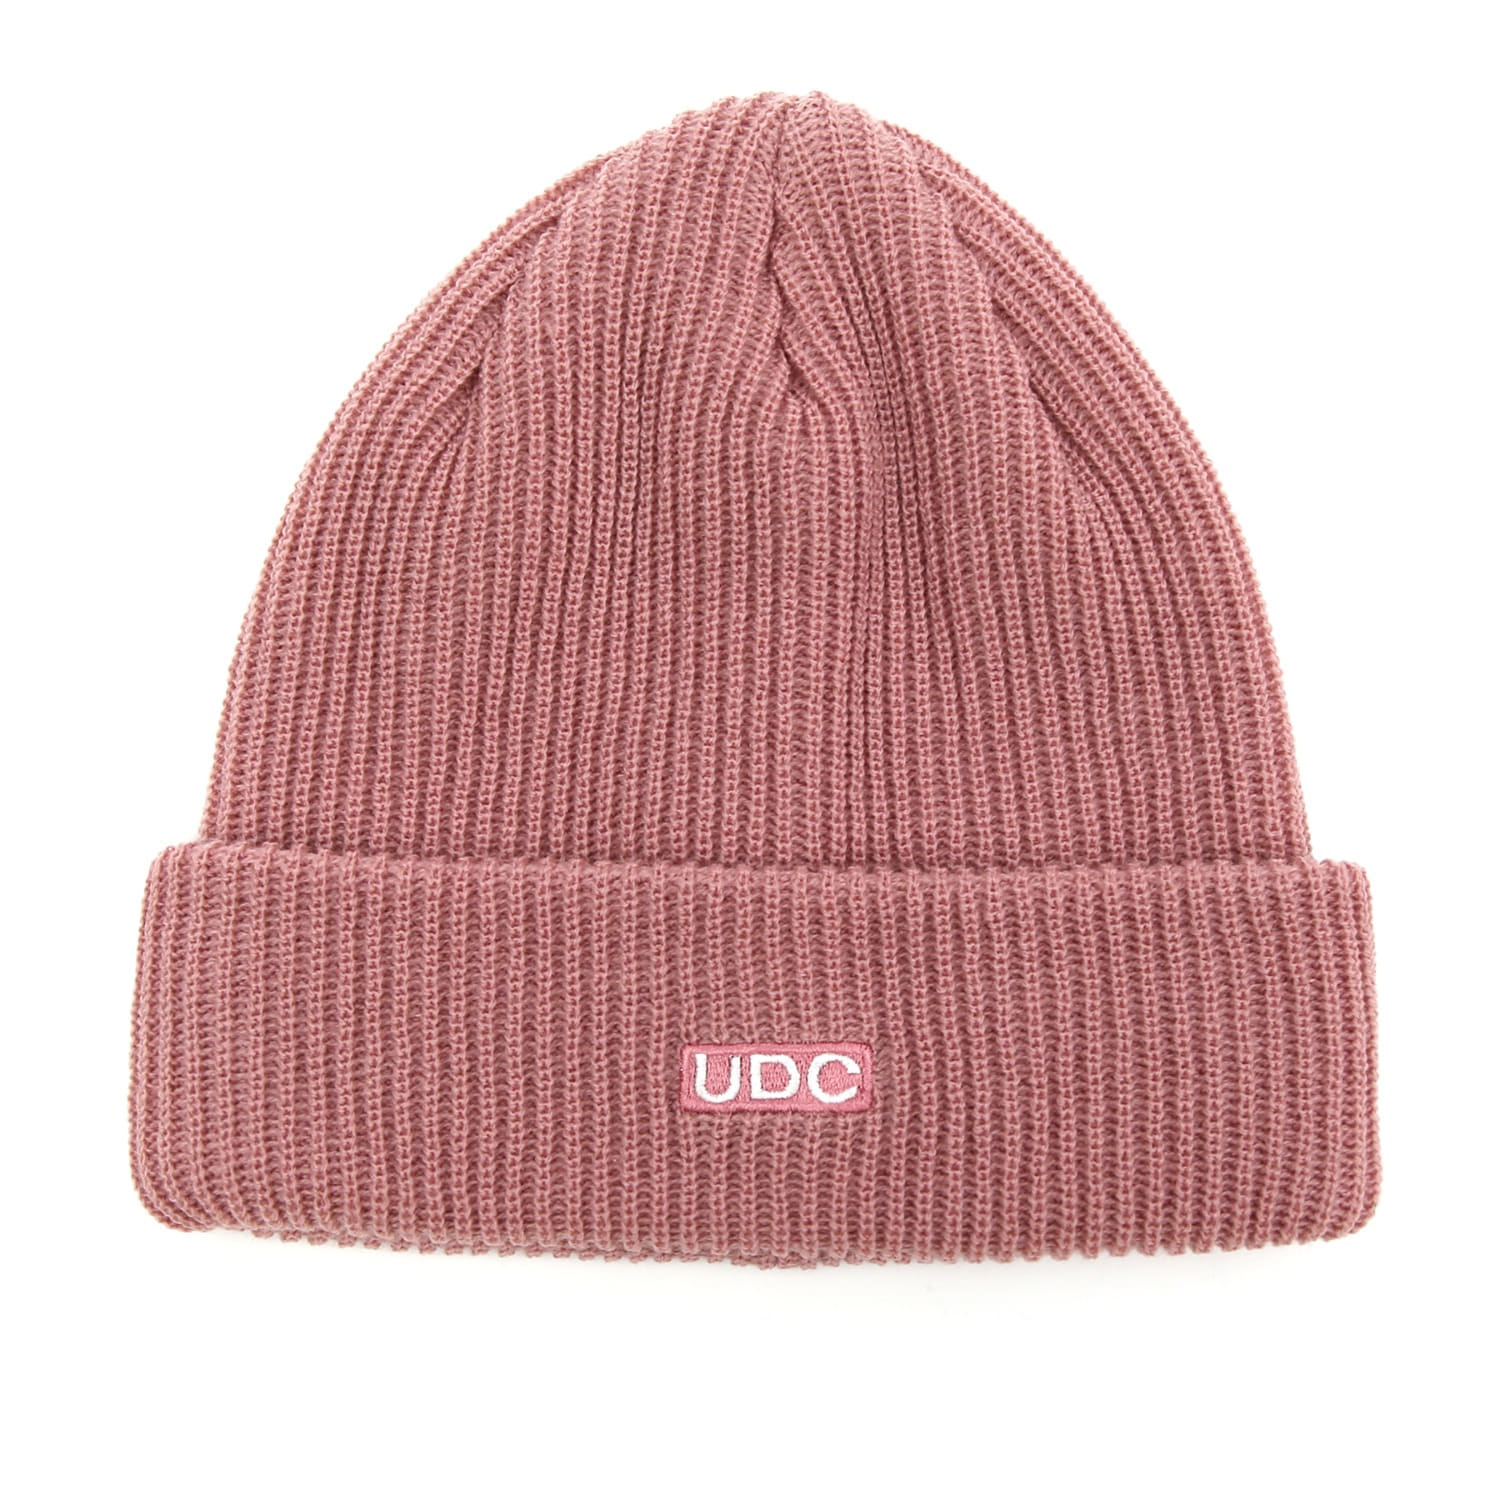 BEANIE / LONG TAIL / BOX LOGO / I PINK